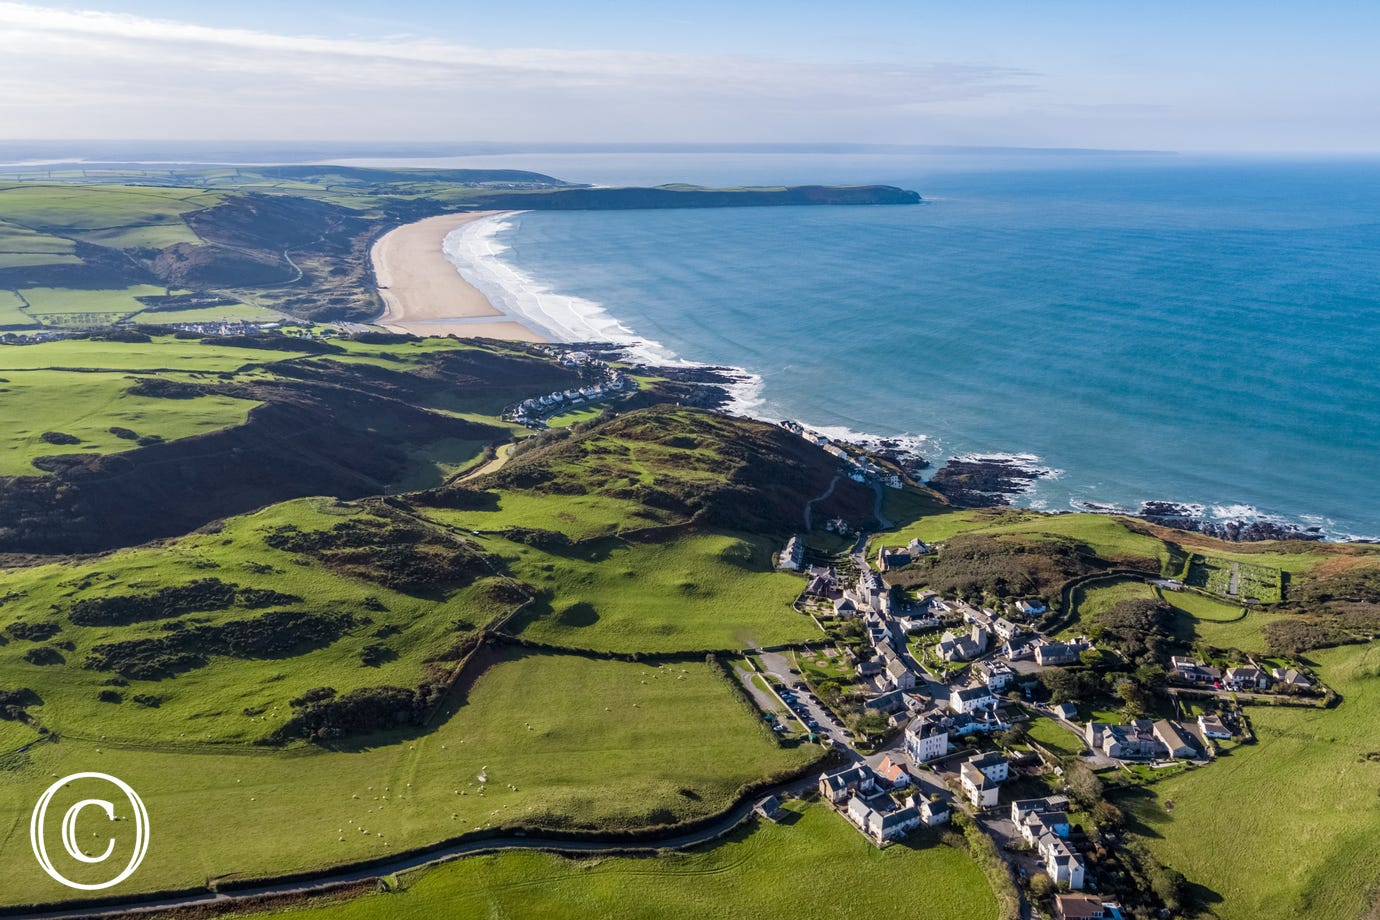 An aerial view of Woolacombe beach and nearby Mortehoe